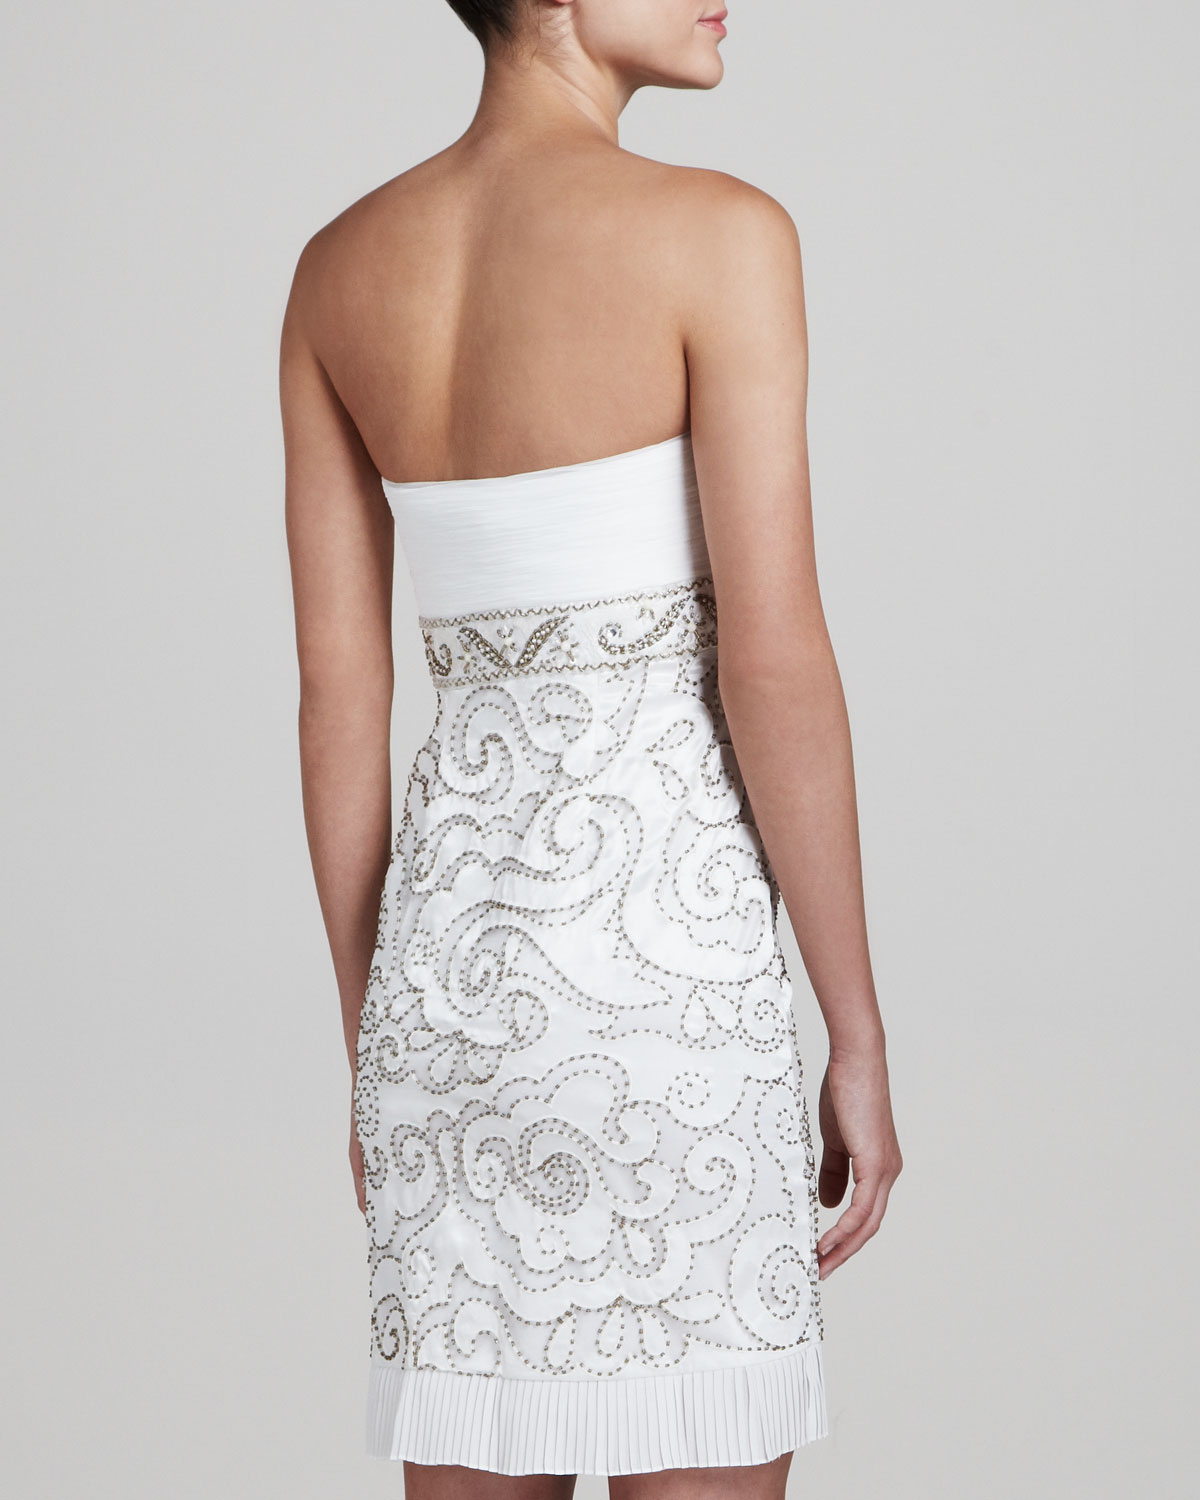 Lyst - Sue Wong Strapless Embellished Cocktail Dress in White